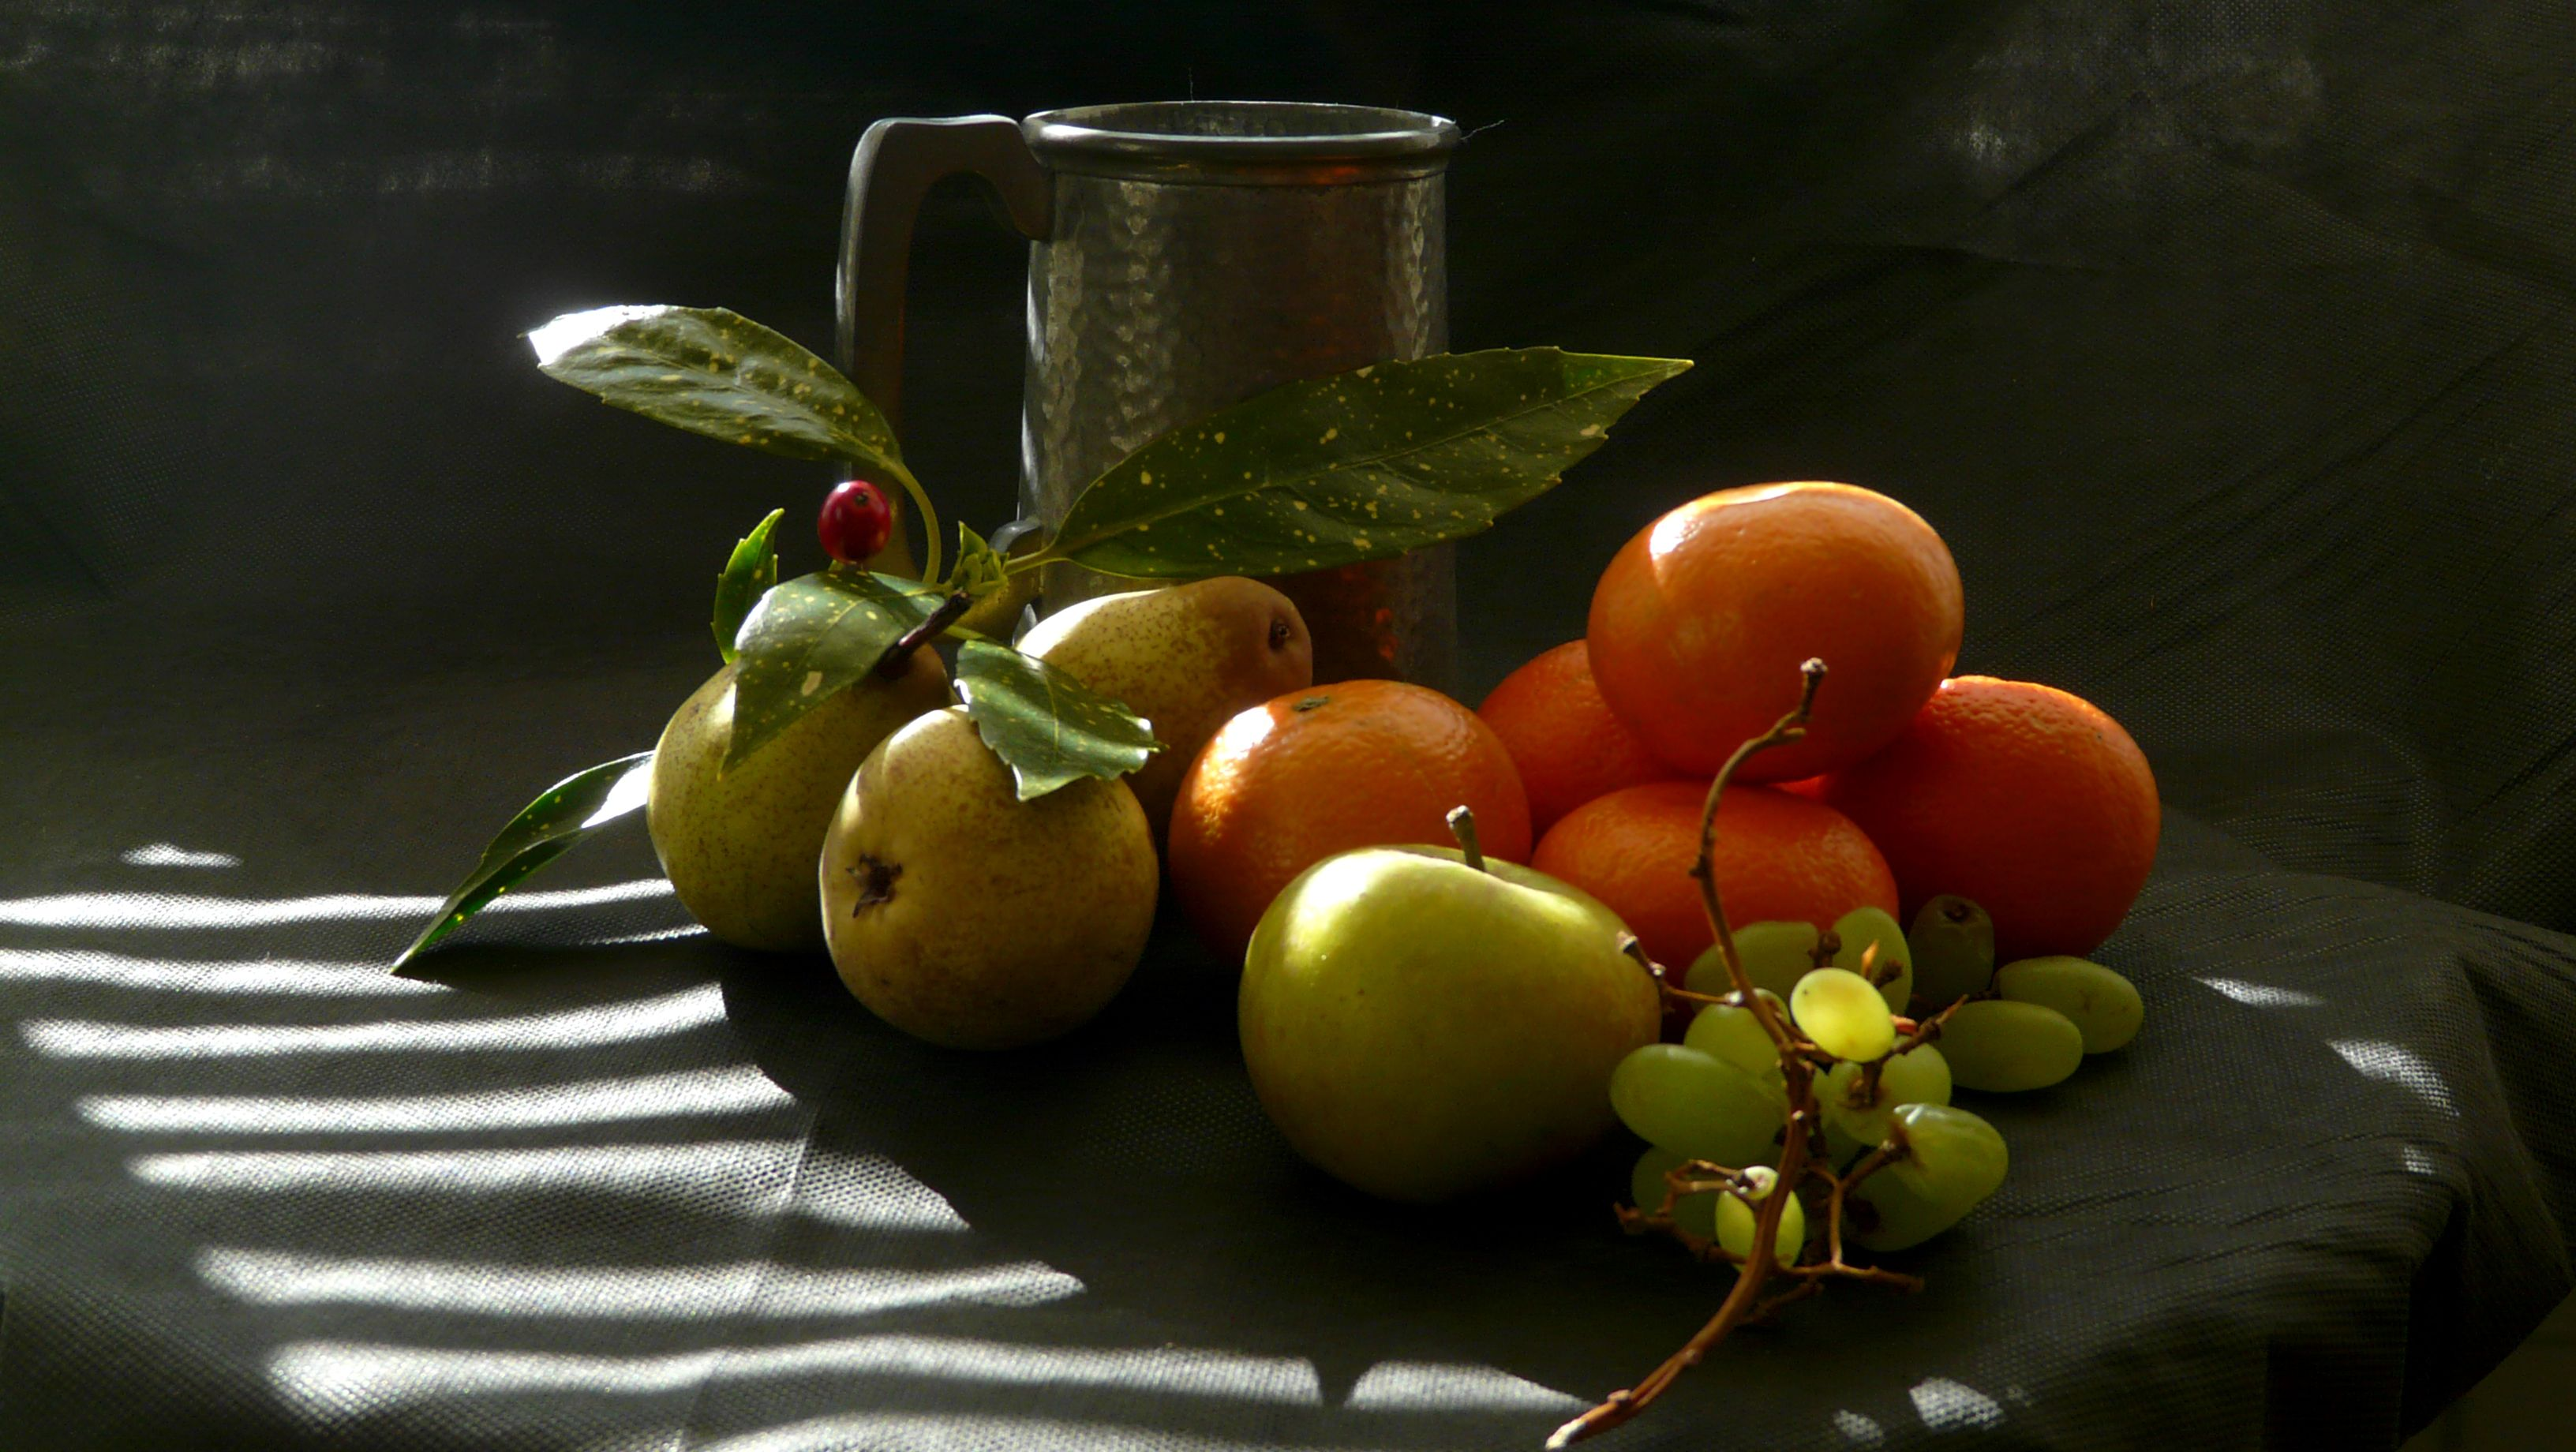 Mahmoud Nasr - Photographic Still Life for Painting